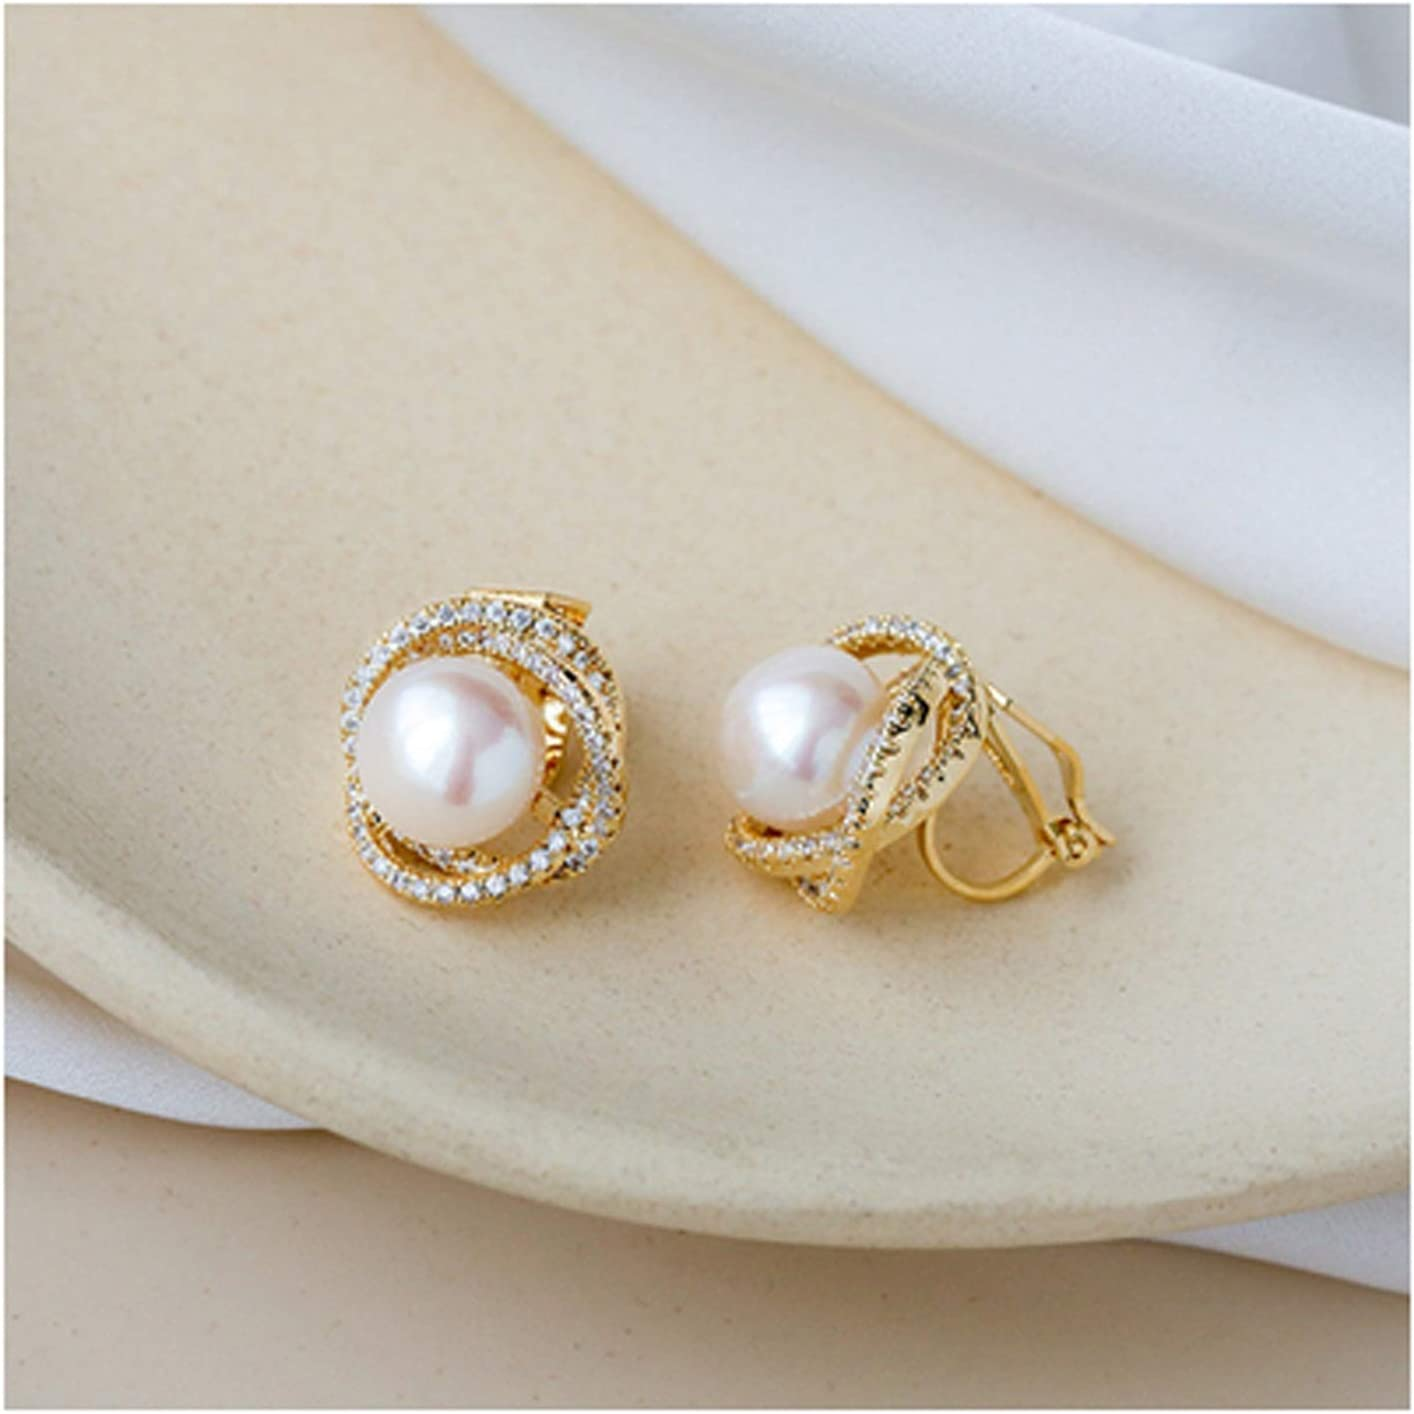 NYKK Earring Pearl Earrings Retro Temperament Simple High-end Earrings Female Pure White Fungus Clip Without Pierced Ears Fashion Jewelry (Color : B)